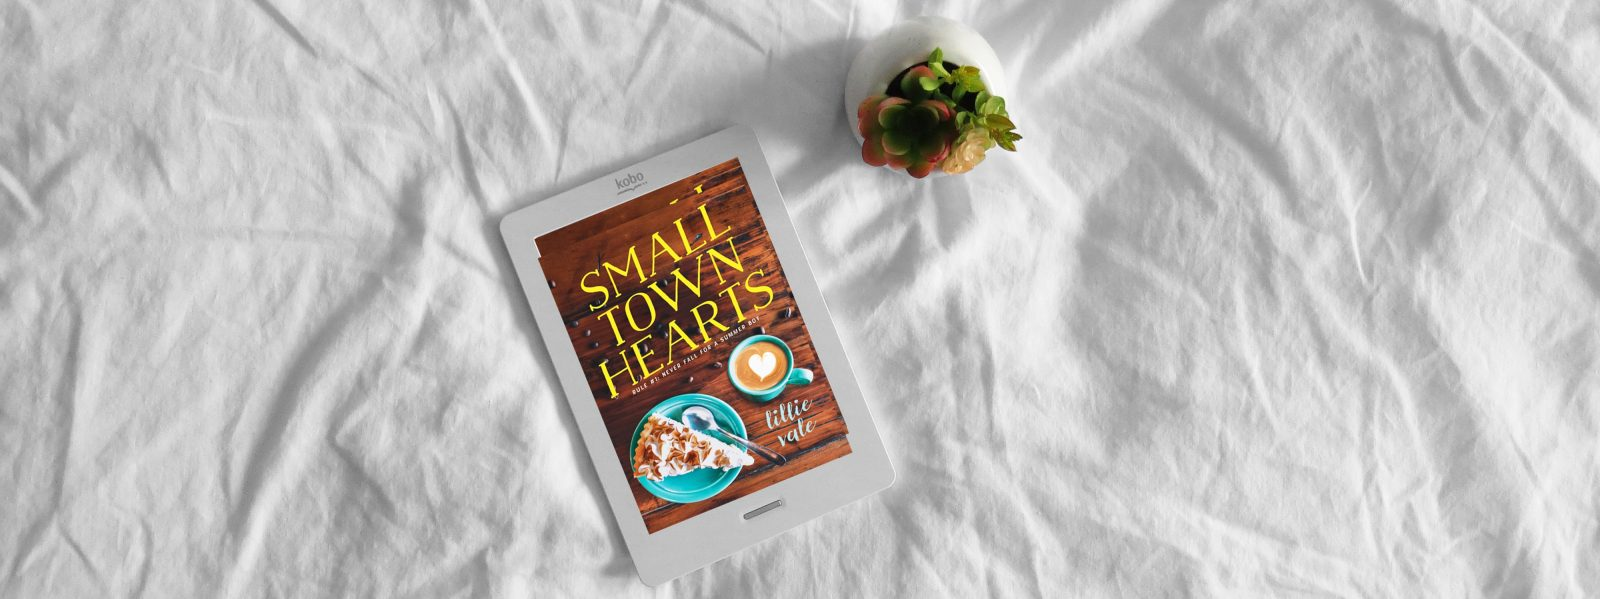 Blog Tour | Small Town Hearts by Lillie Vale Review + Q&A